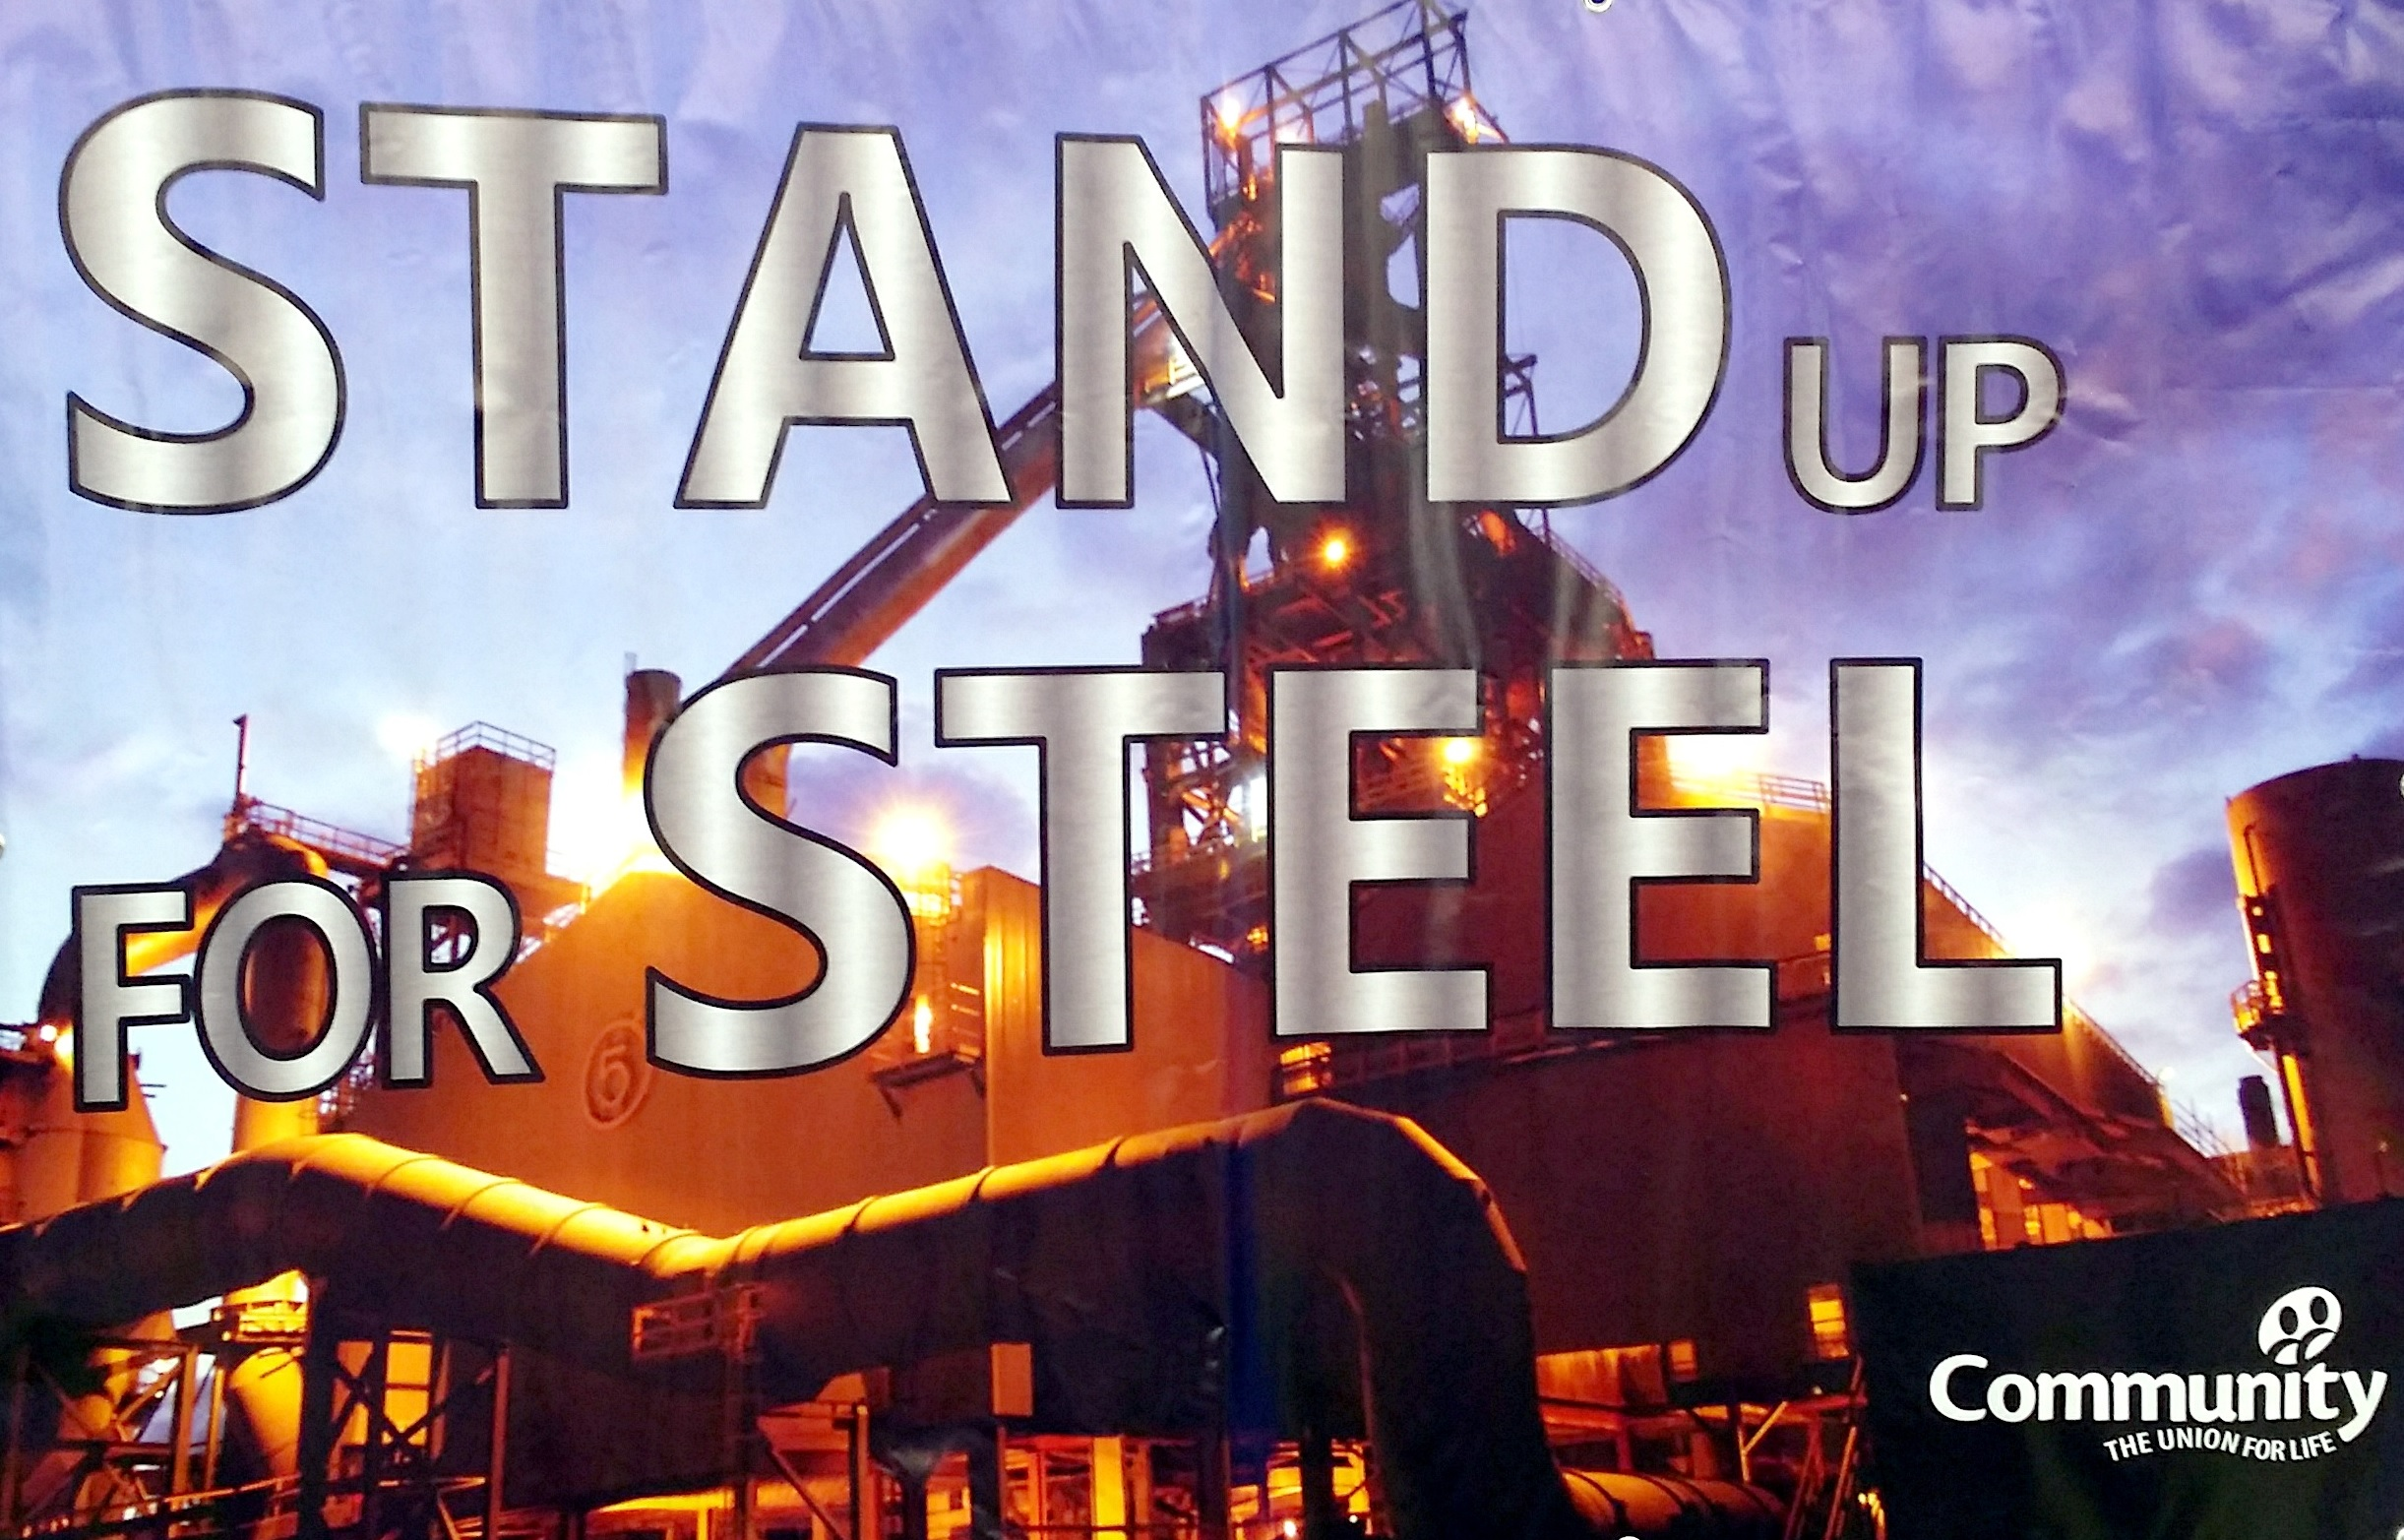 Stand_Up_For_Steel.jpg